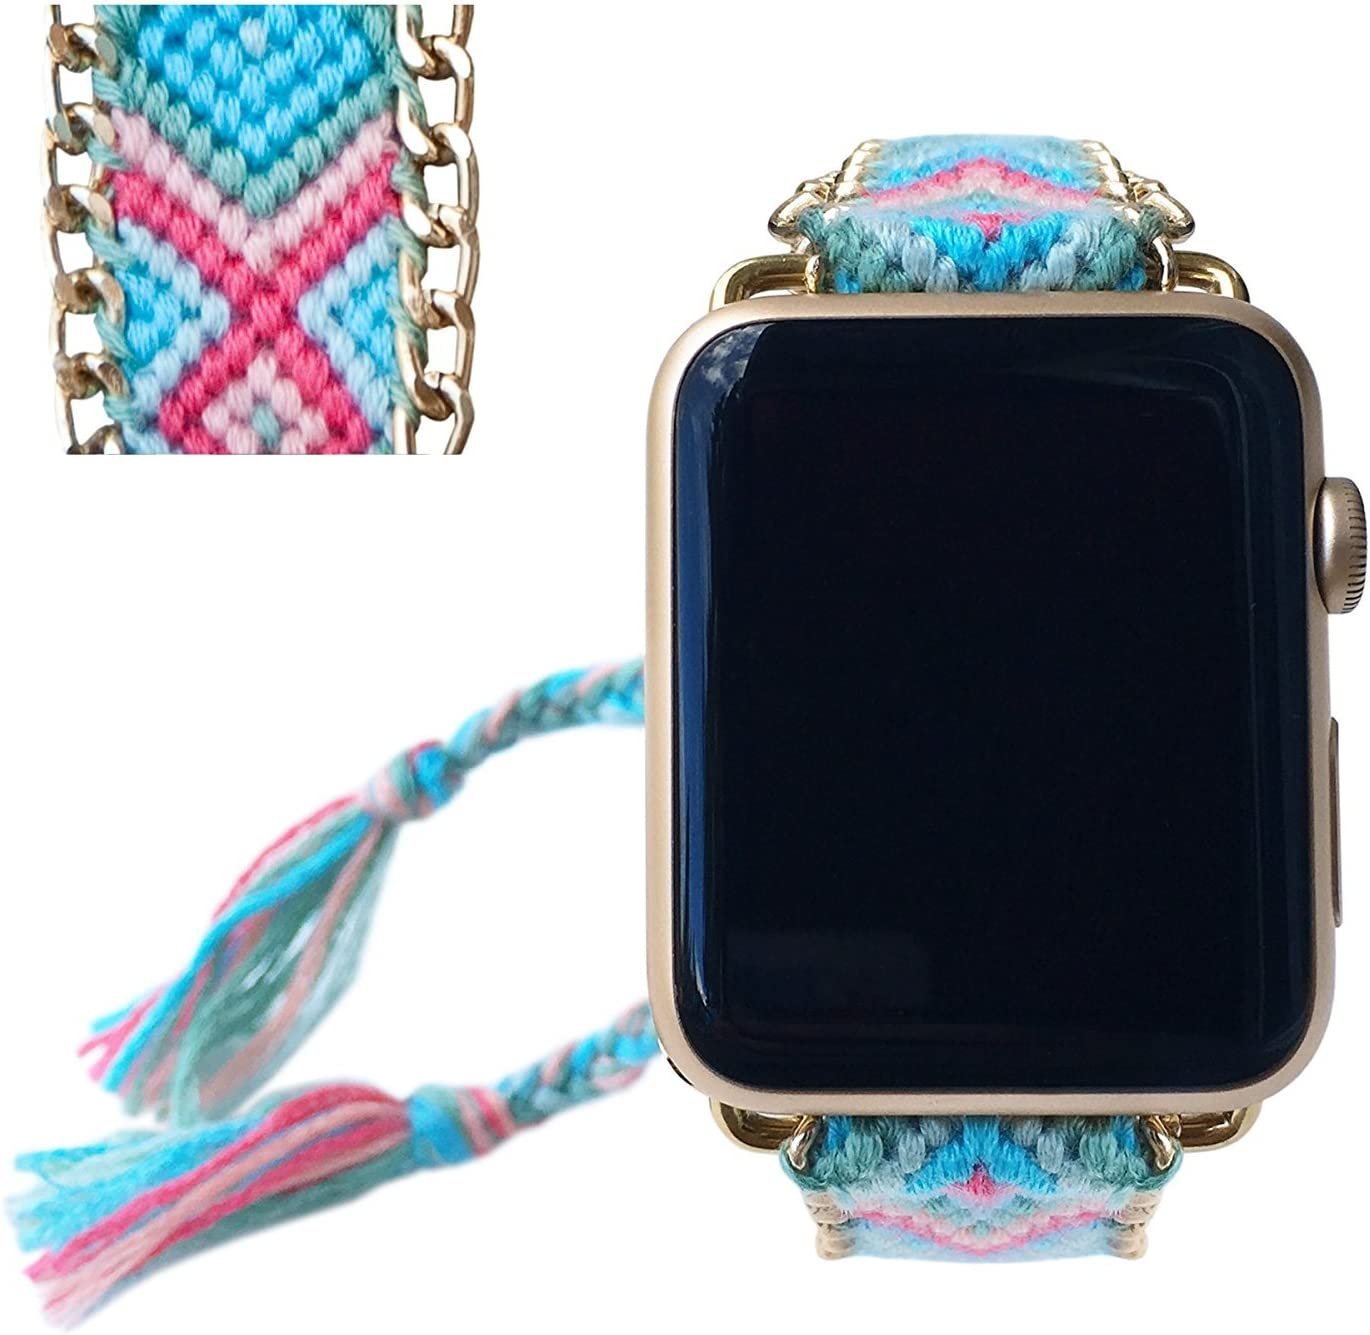 Apple Watch Band 38MM, Fashion Handmade Friendship Bracelet Replacement iWatch Strap Women Girls for Apple Watch Series 2 Series 1 All Version (Pale Summer)